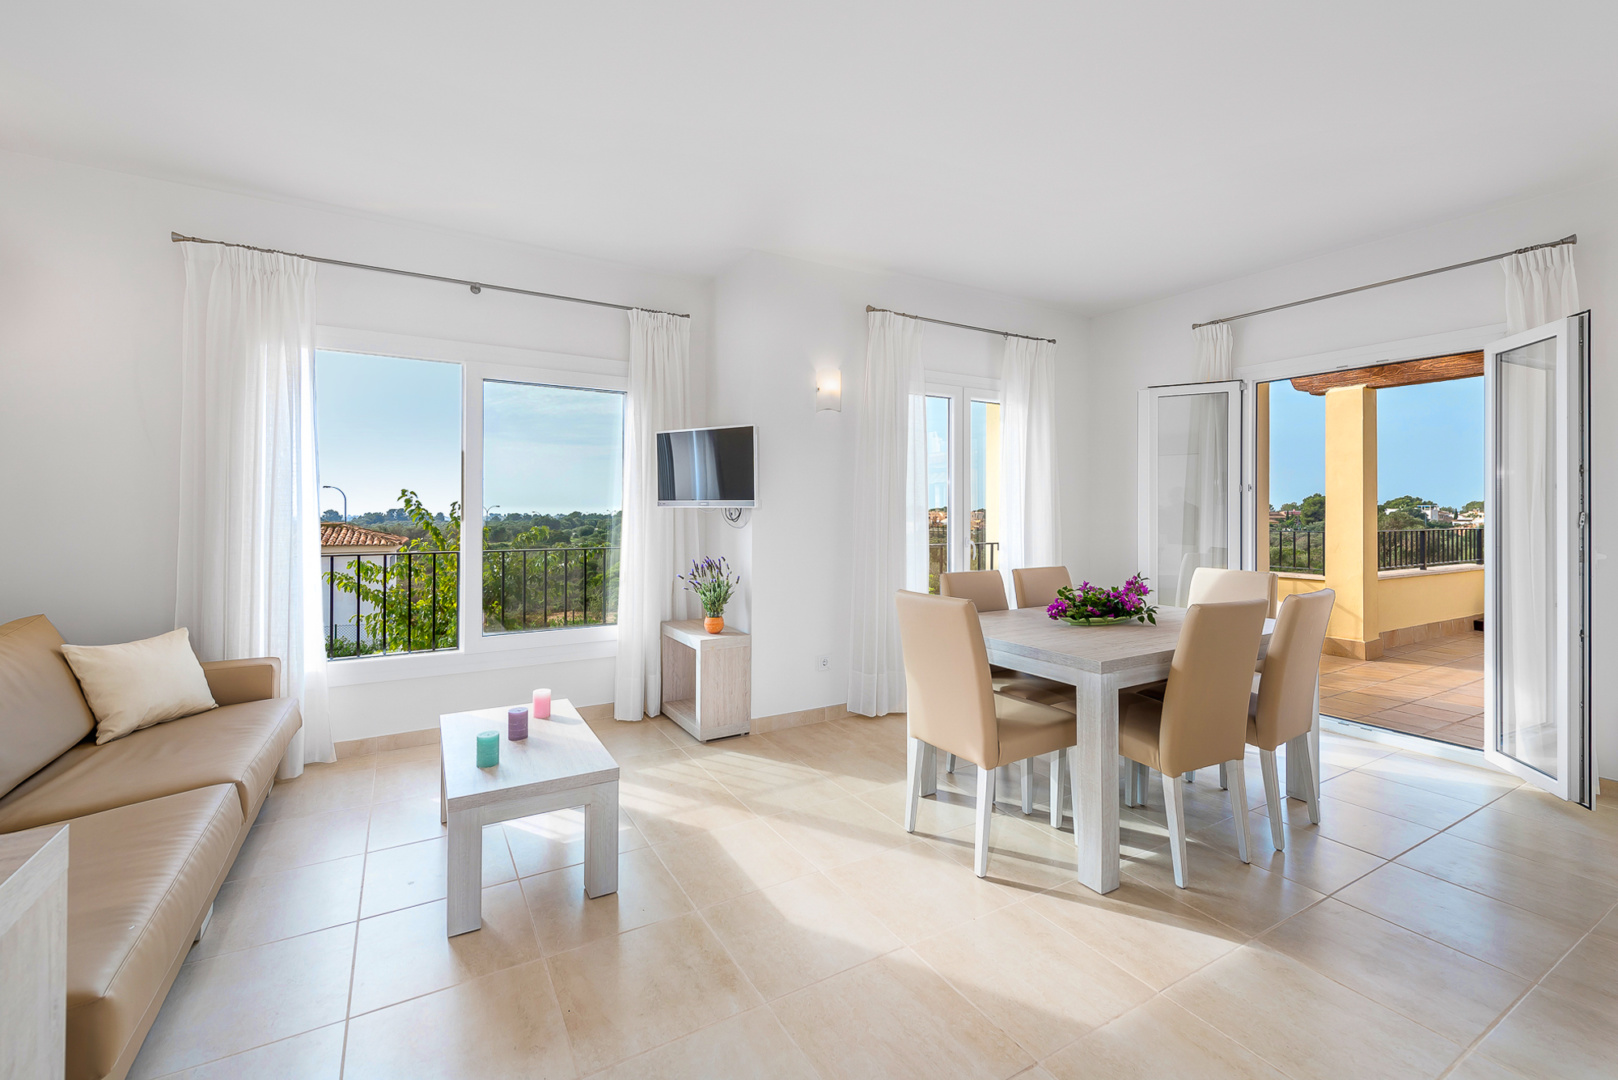 Luxury Apartments For Sale In Mallorca Casas Es Trenc